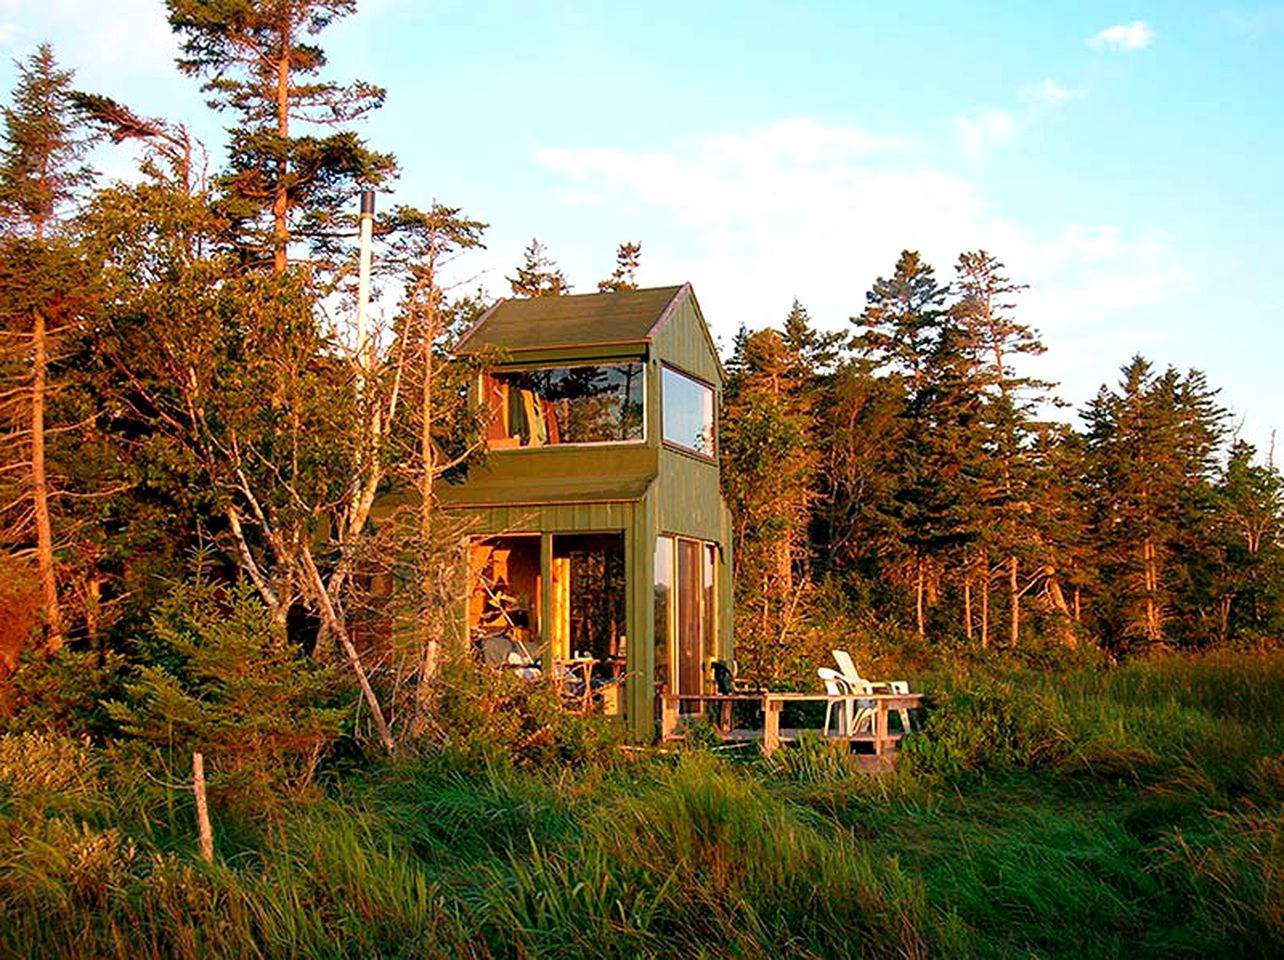 Eco-Cabin rental for a secluded getaway in New Brunswick, Canada